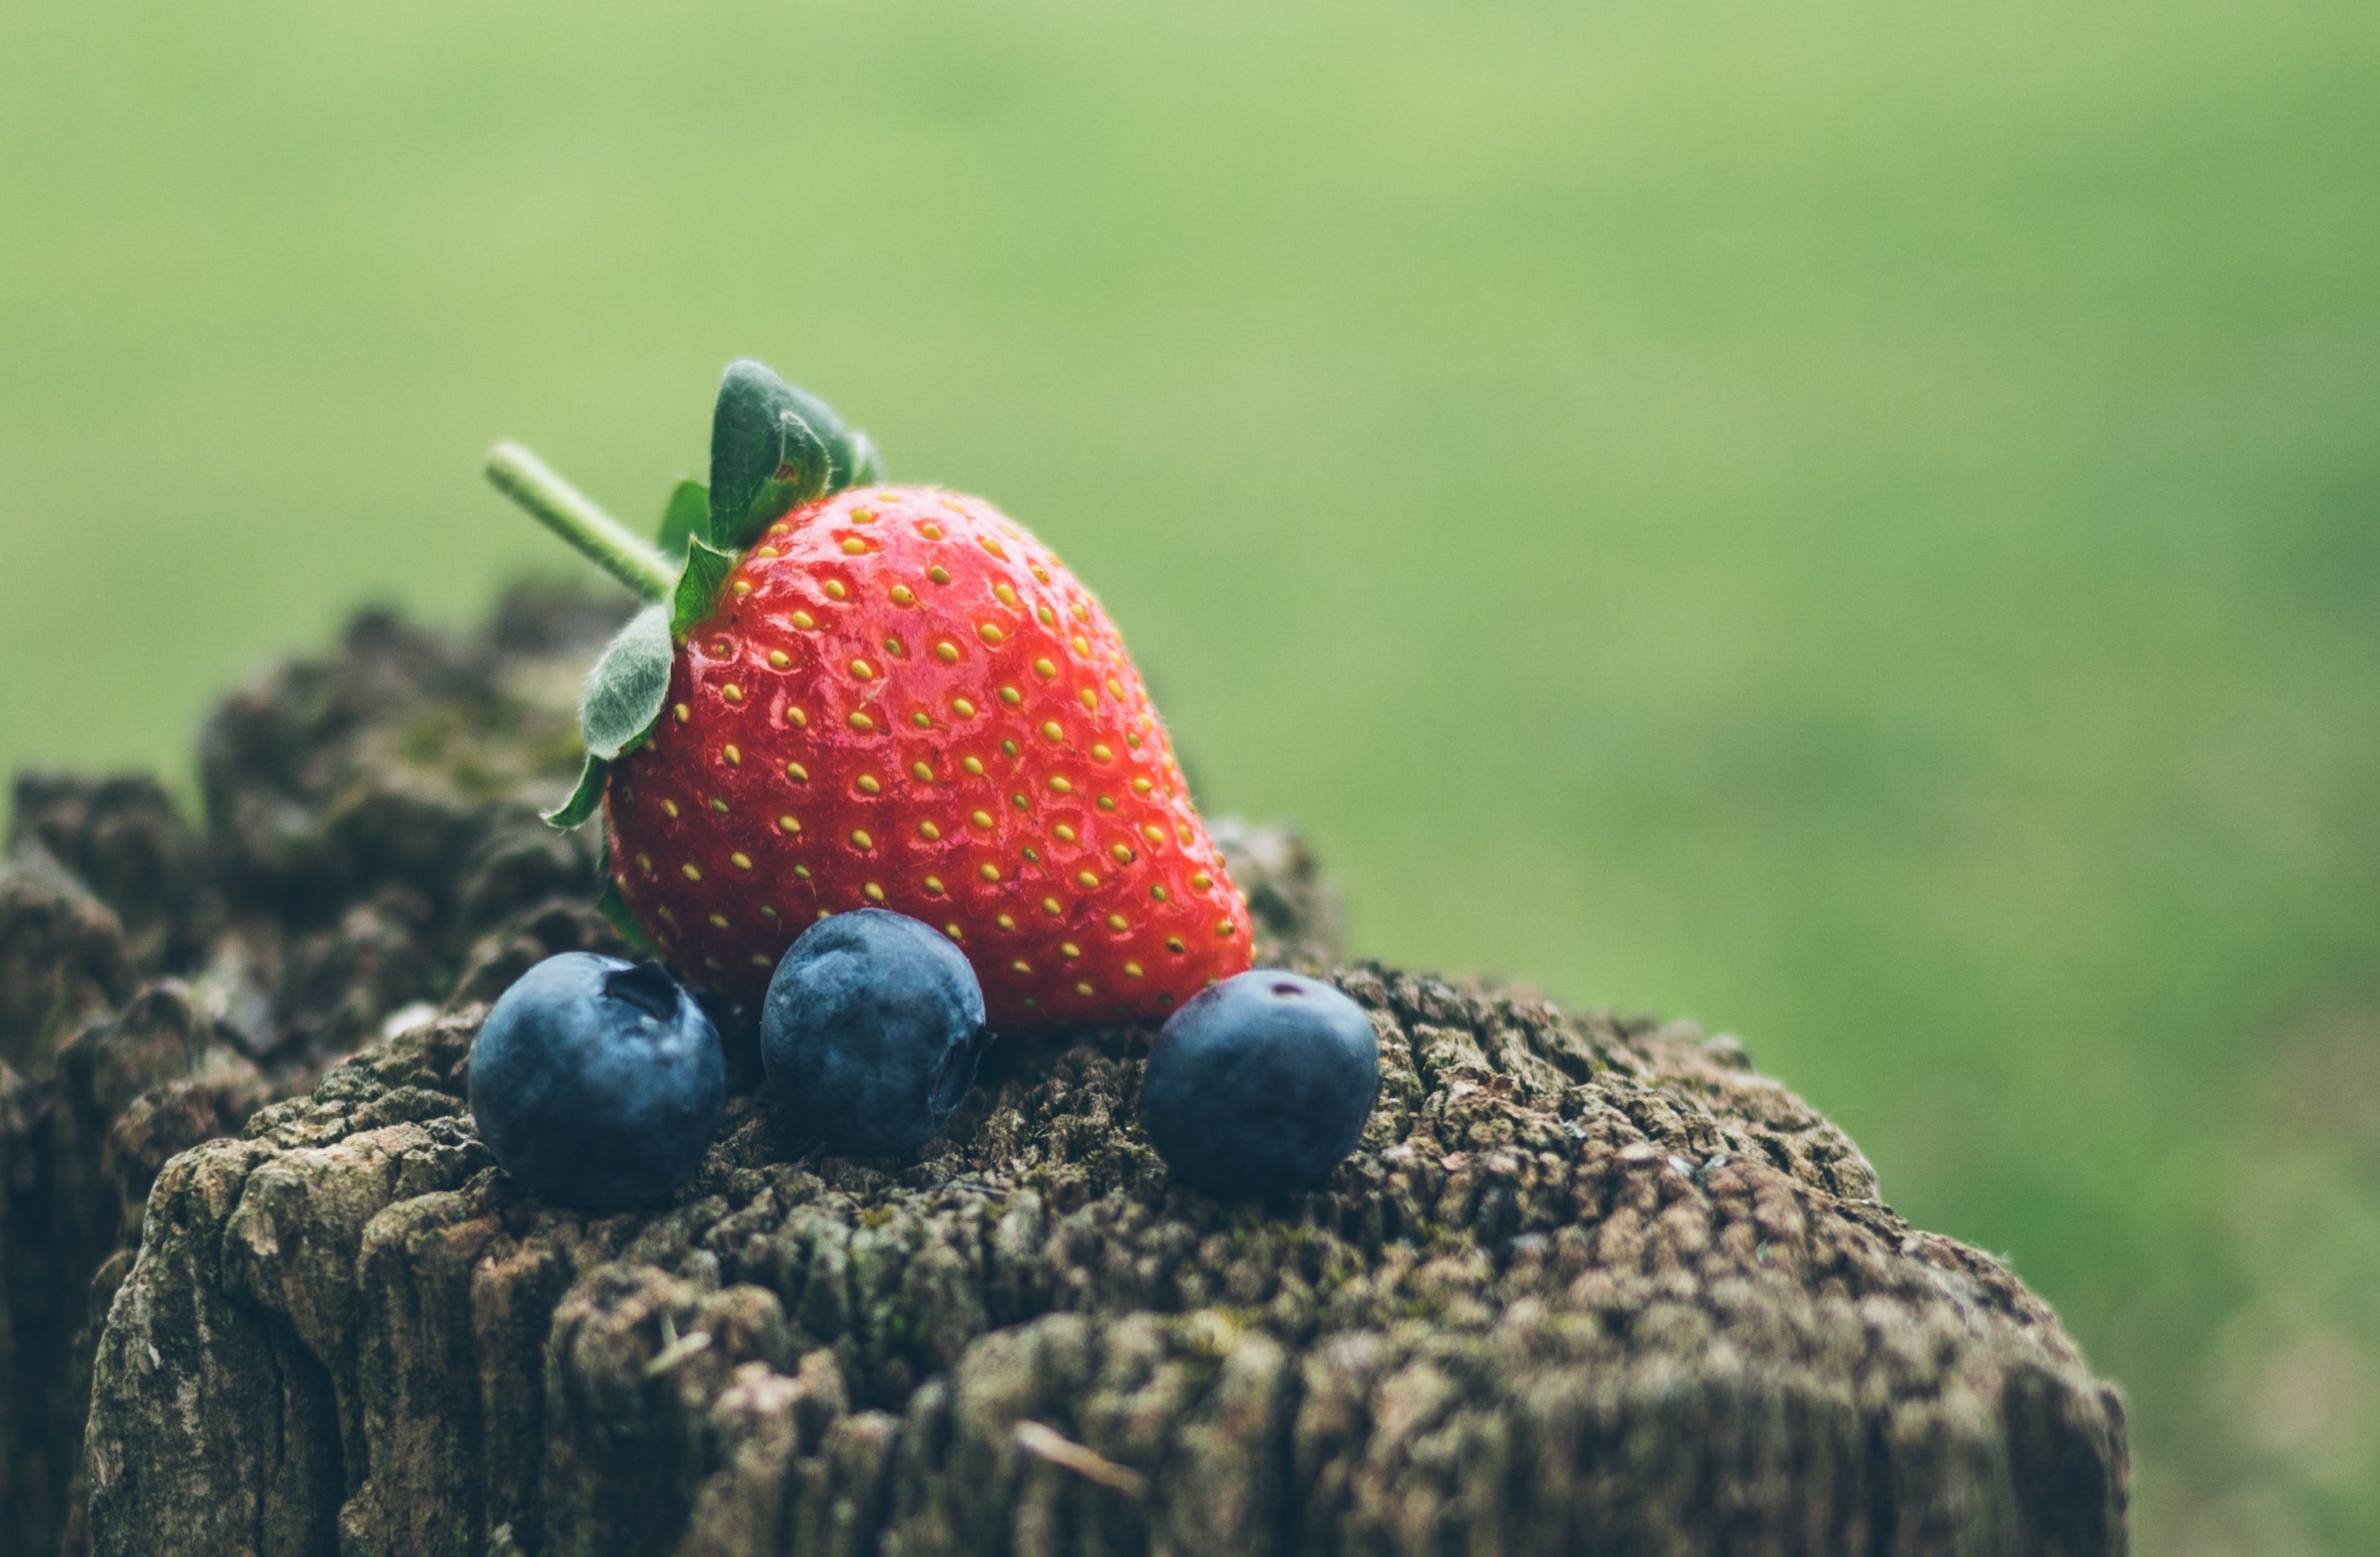 A strawberry and three blueberries balanced on a wooden stump